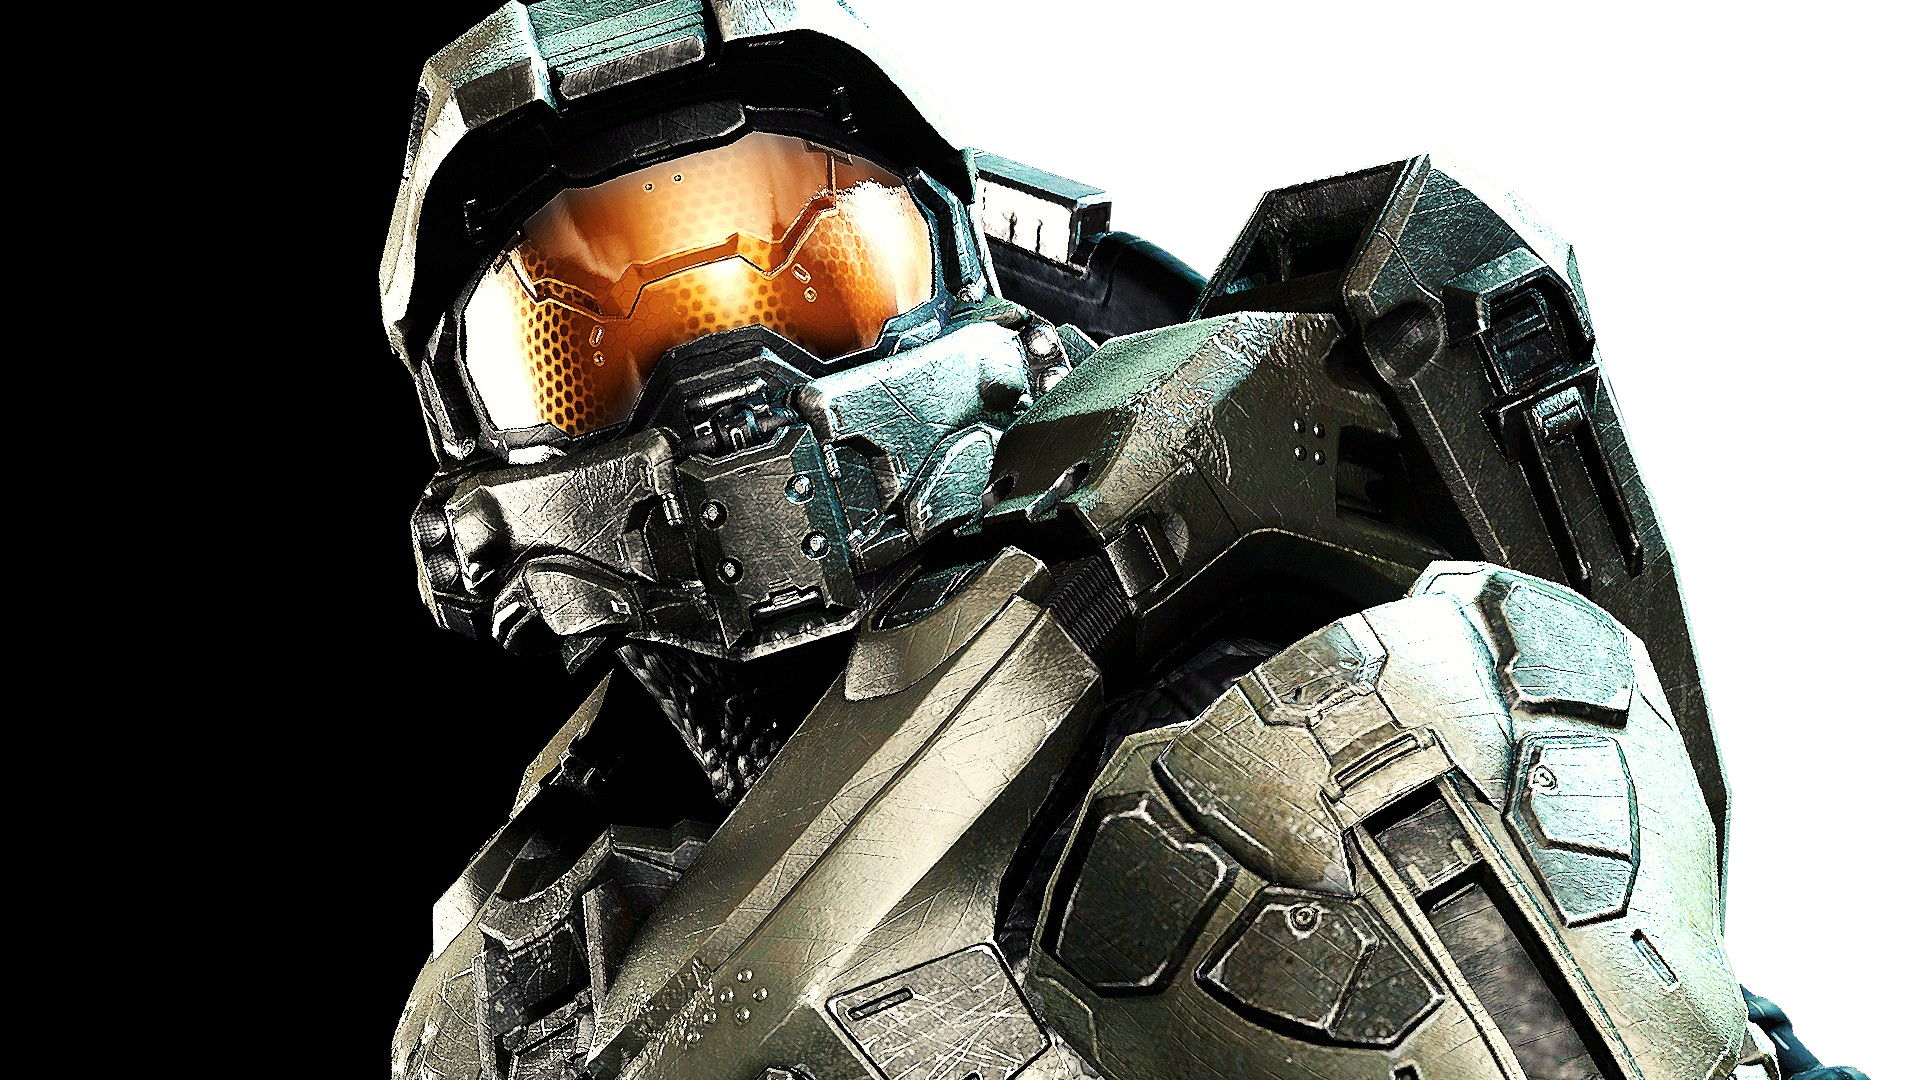 Halo Master Chief wallpaper 1920x1080 113259 WallpaperUP 1920x1080